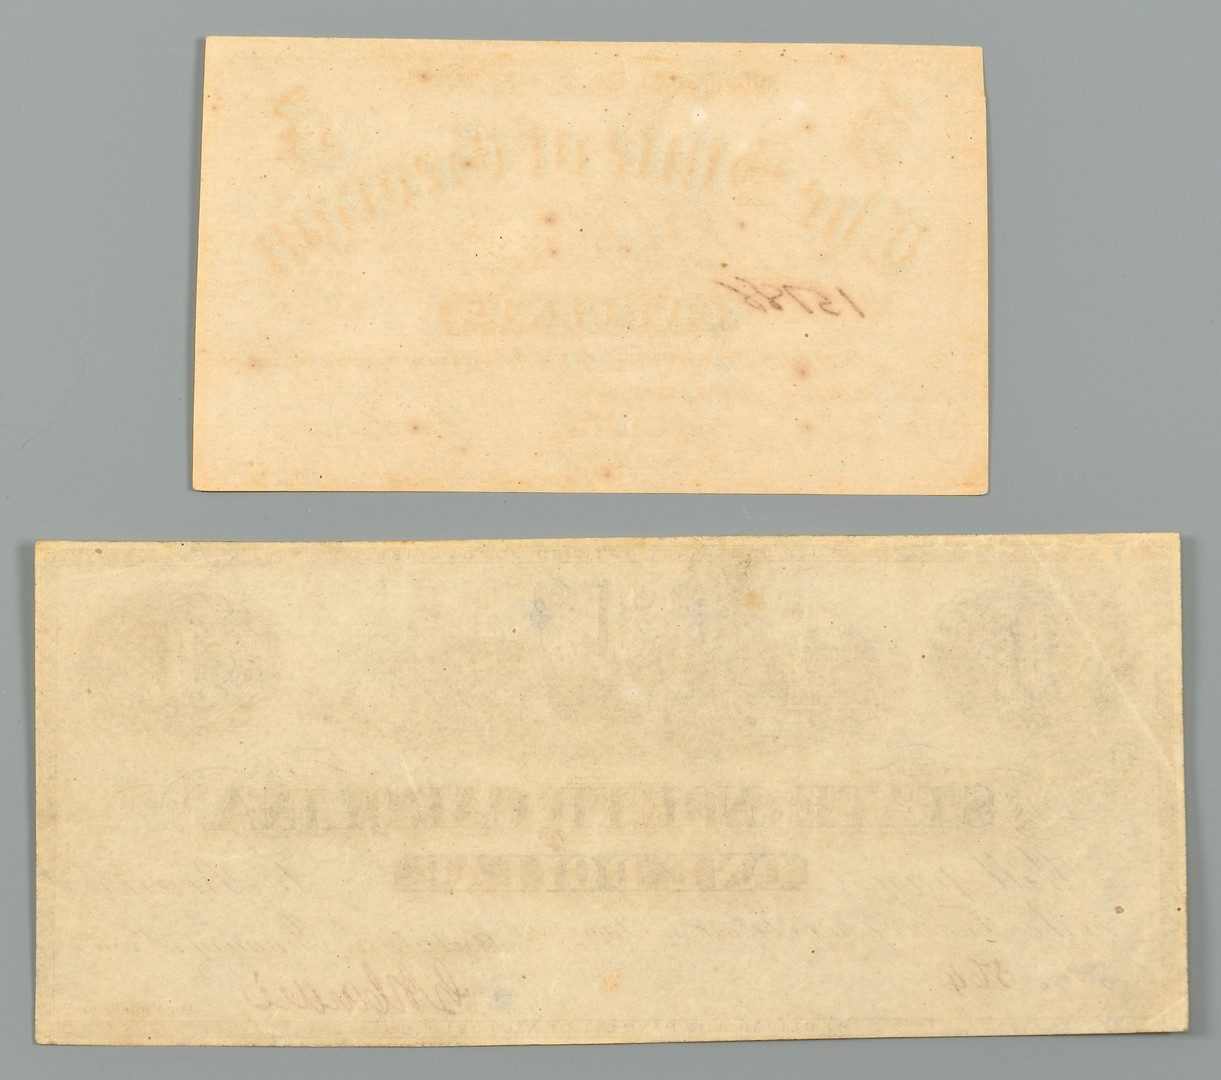 Lot 554: Collection of Confederate Currency, 6 items